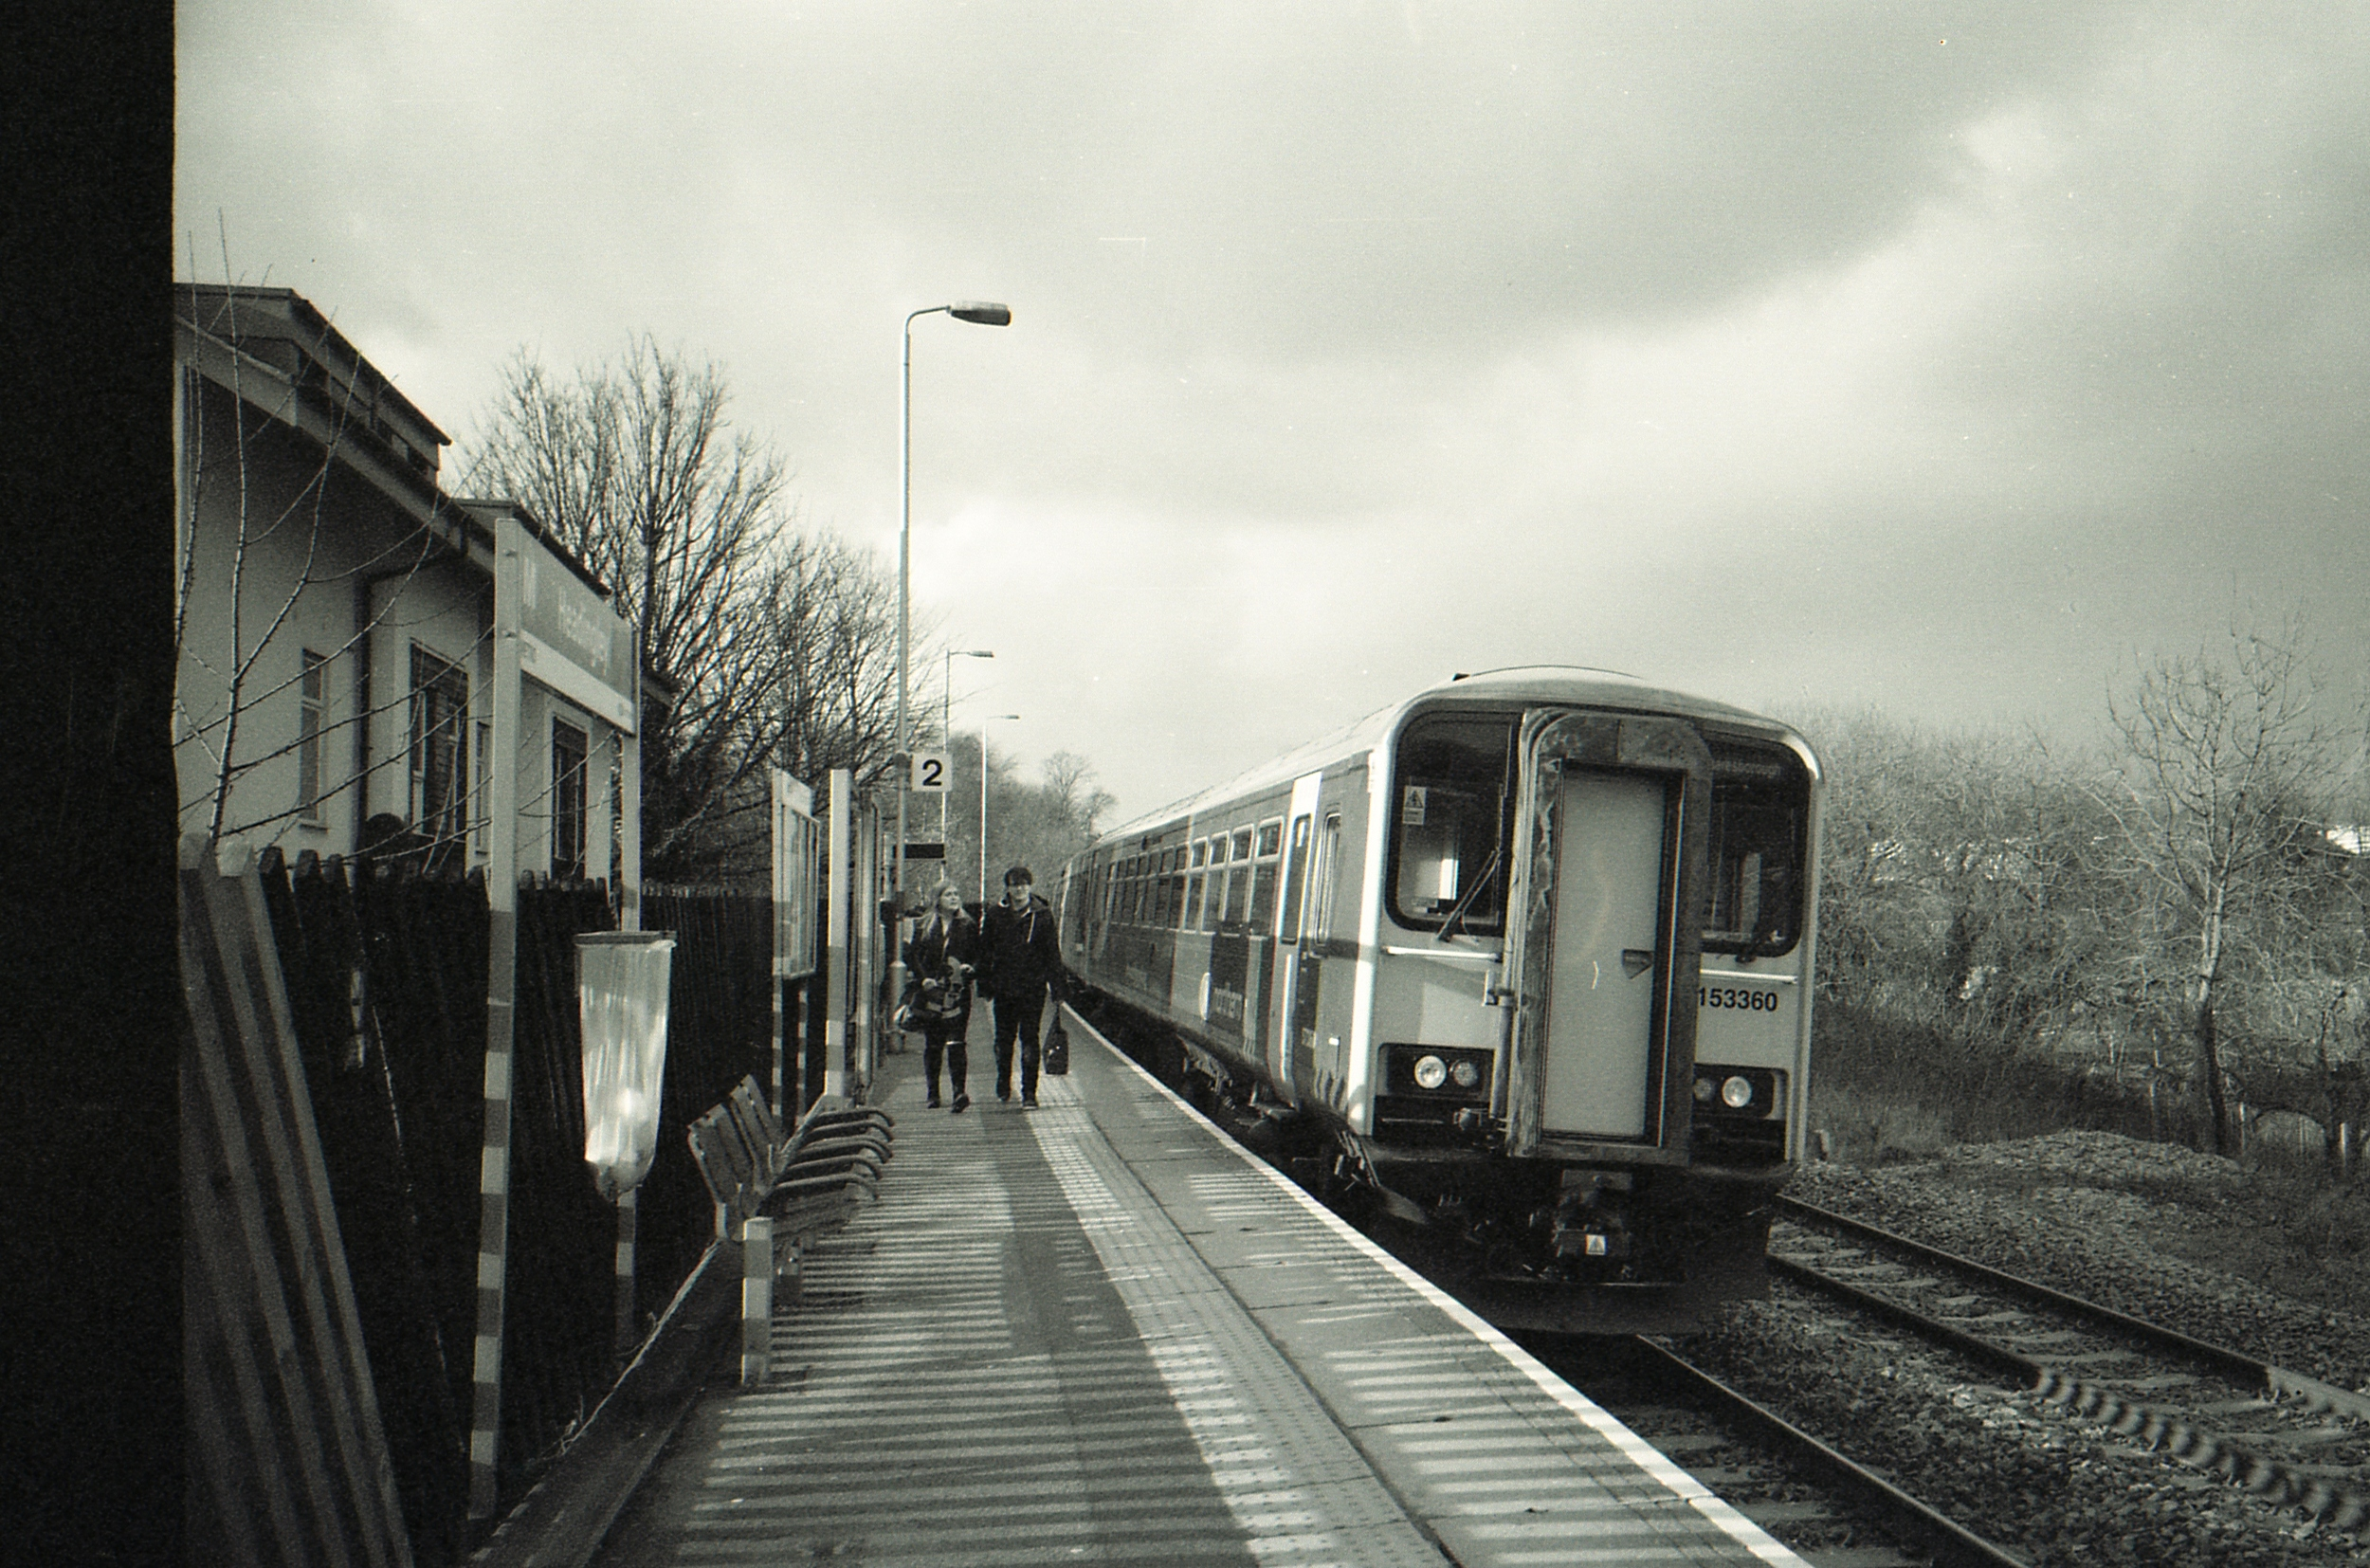 30/366 - I catch the train at least 5 days a week, I'm surprised this is the first train photo of the project